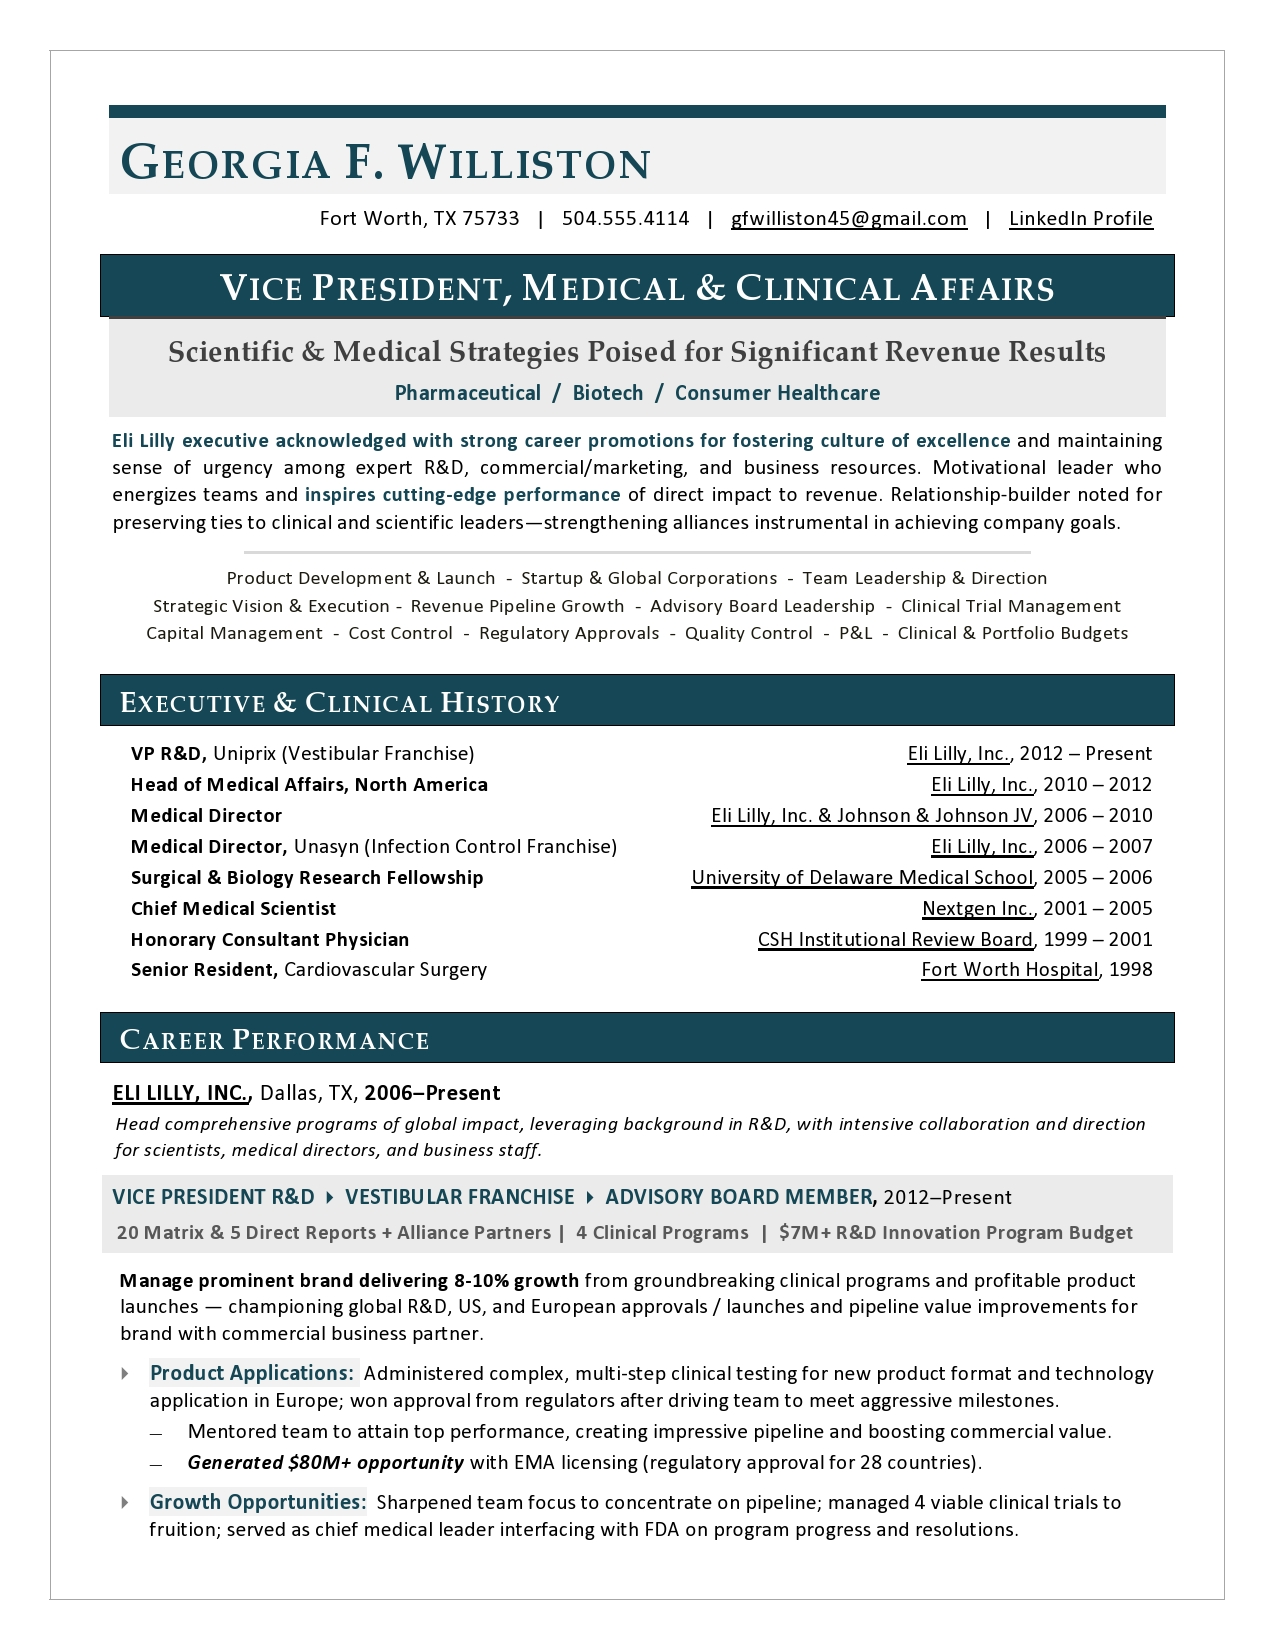 best pharmaceutical resume writing services the of biotechnology vp medical affairs by Resume Best Biotechnology Resume